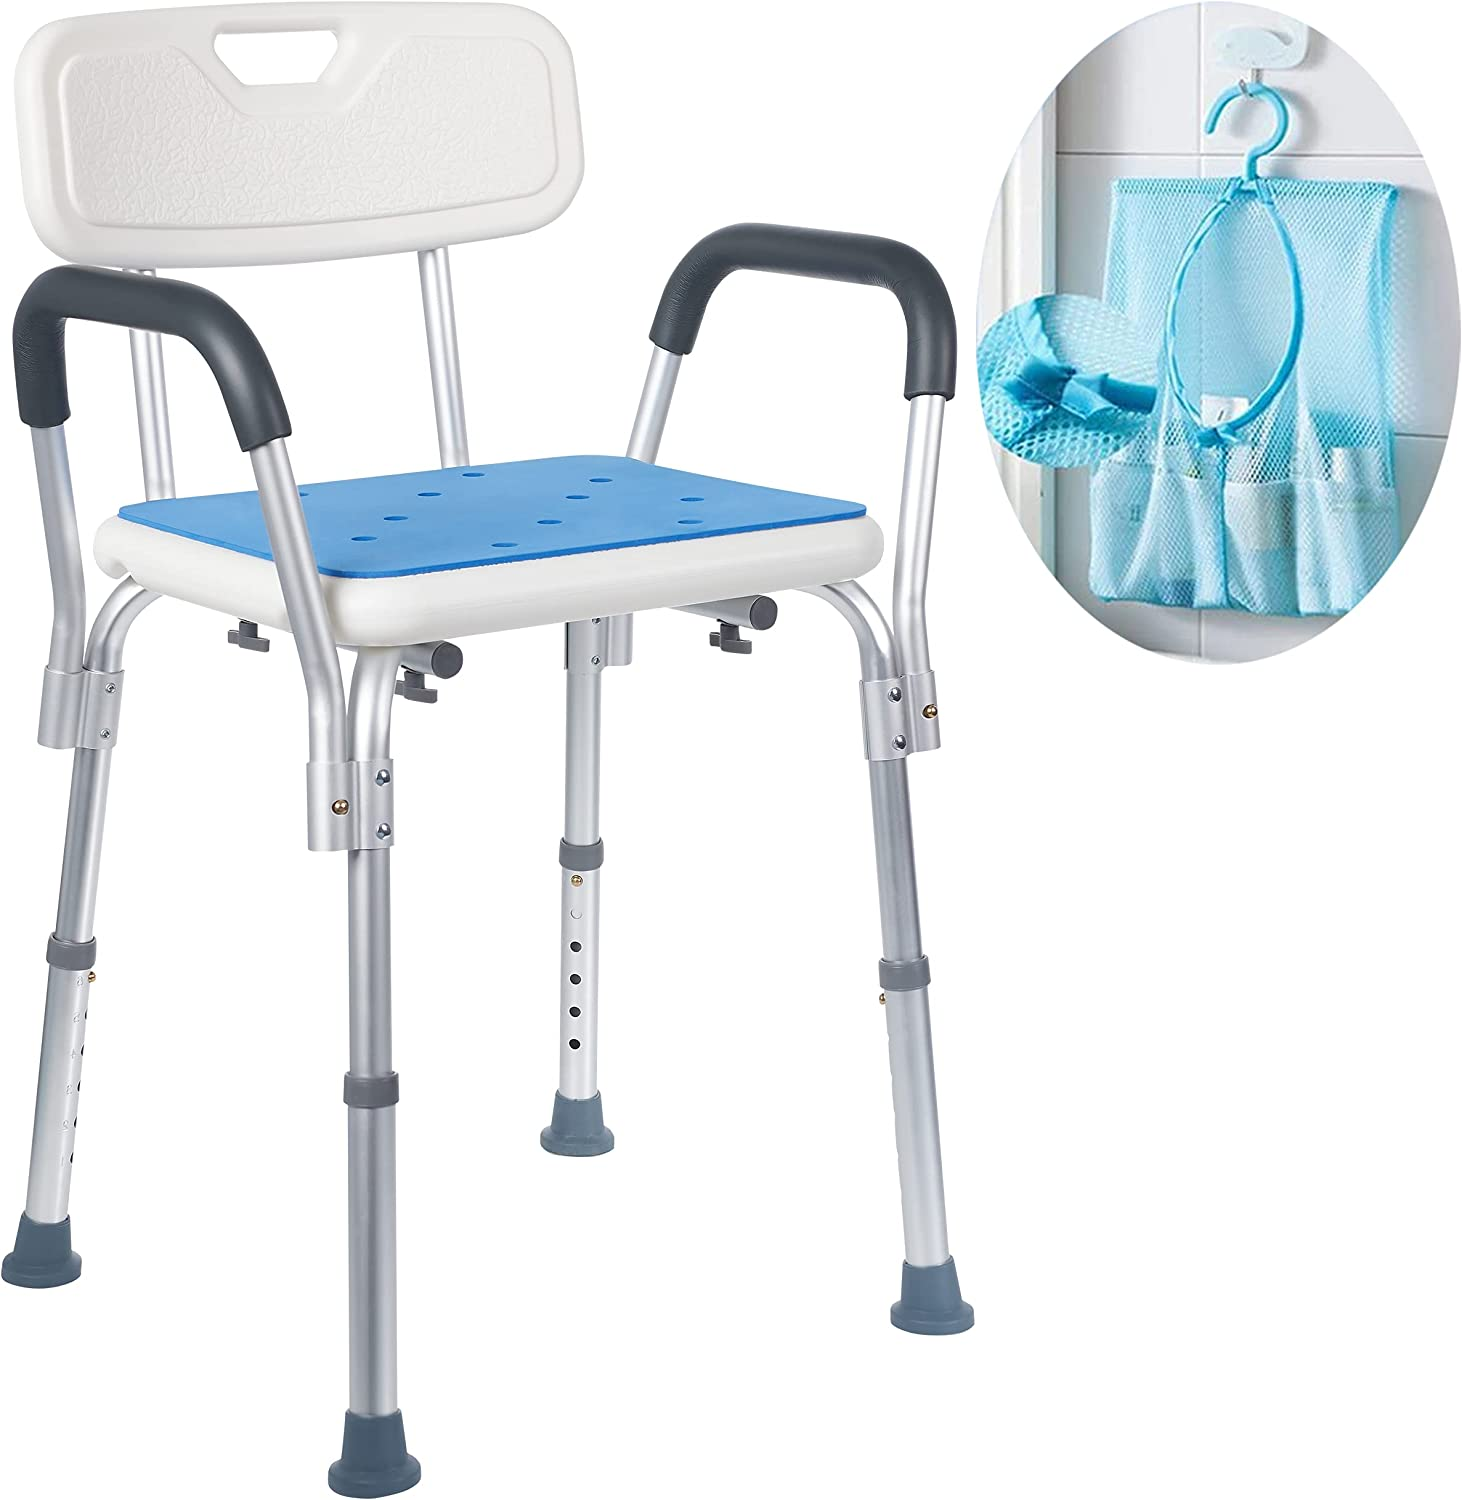 Medokare Shower Chair For Elderly Easily Adjustable Chairs For Inside Bathtub Or Shower With Arms Back For Adults And Seniors With Handicap White Health Personal Care